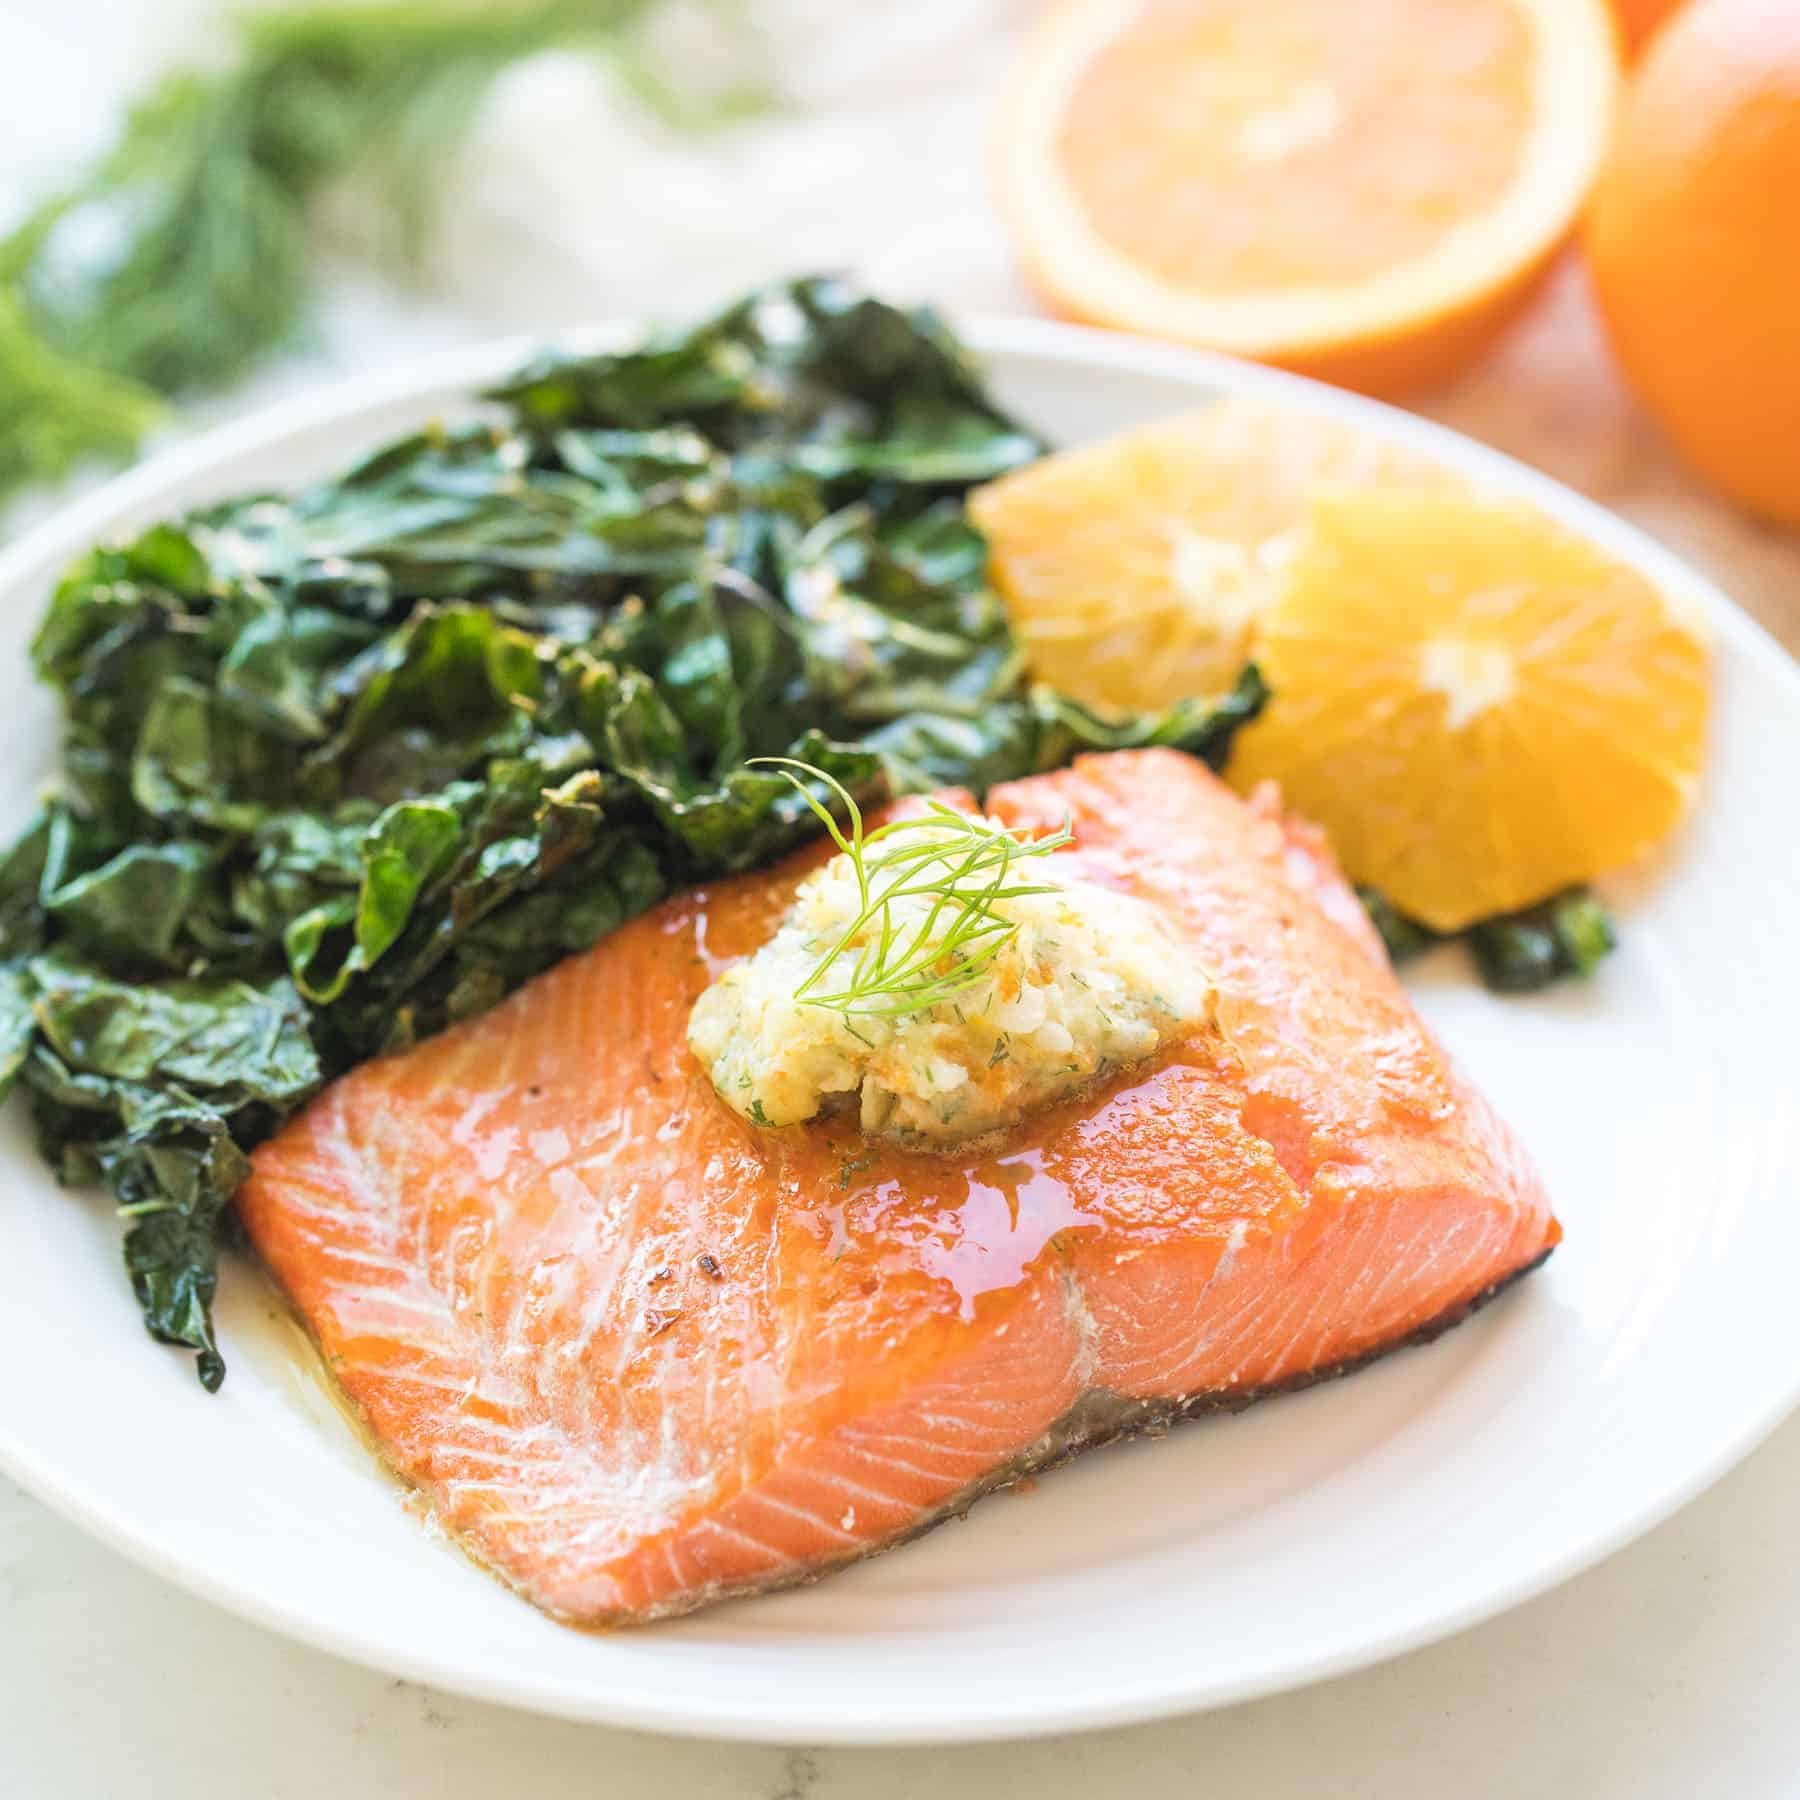 salmon on a white plate with butter on top next to peeled oranges and green kale salad